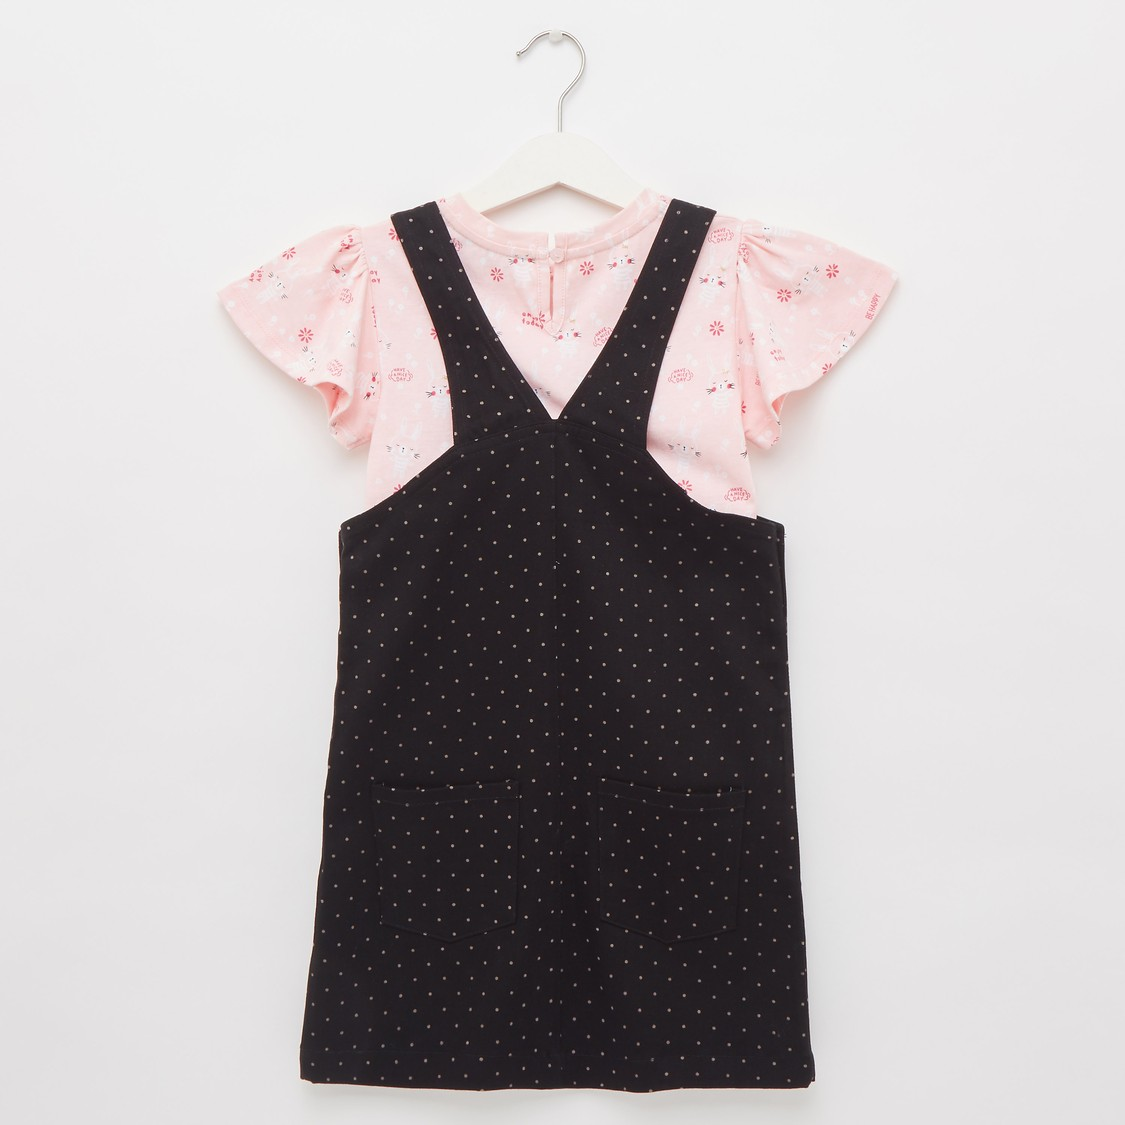 All-Over Print Square Neck Pinafore Dress with Top